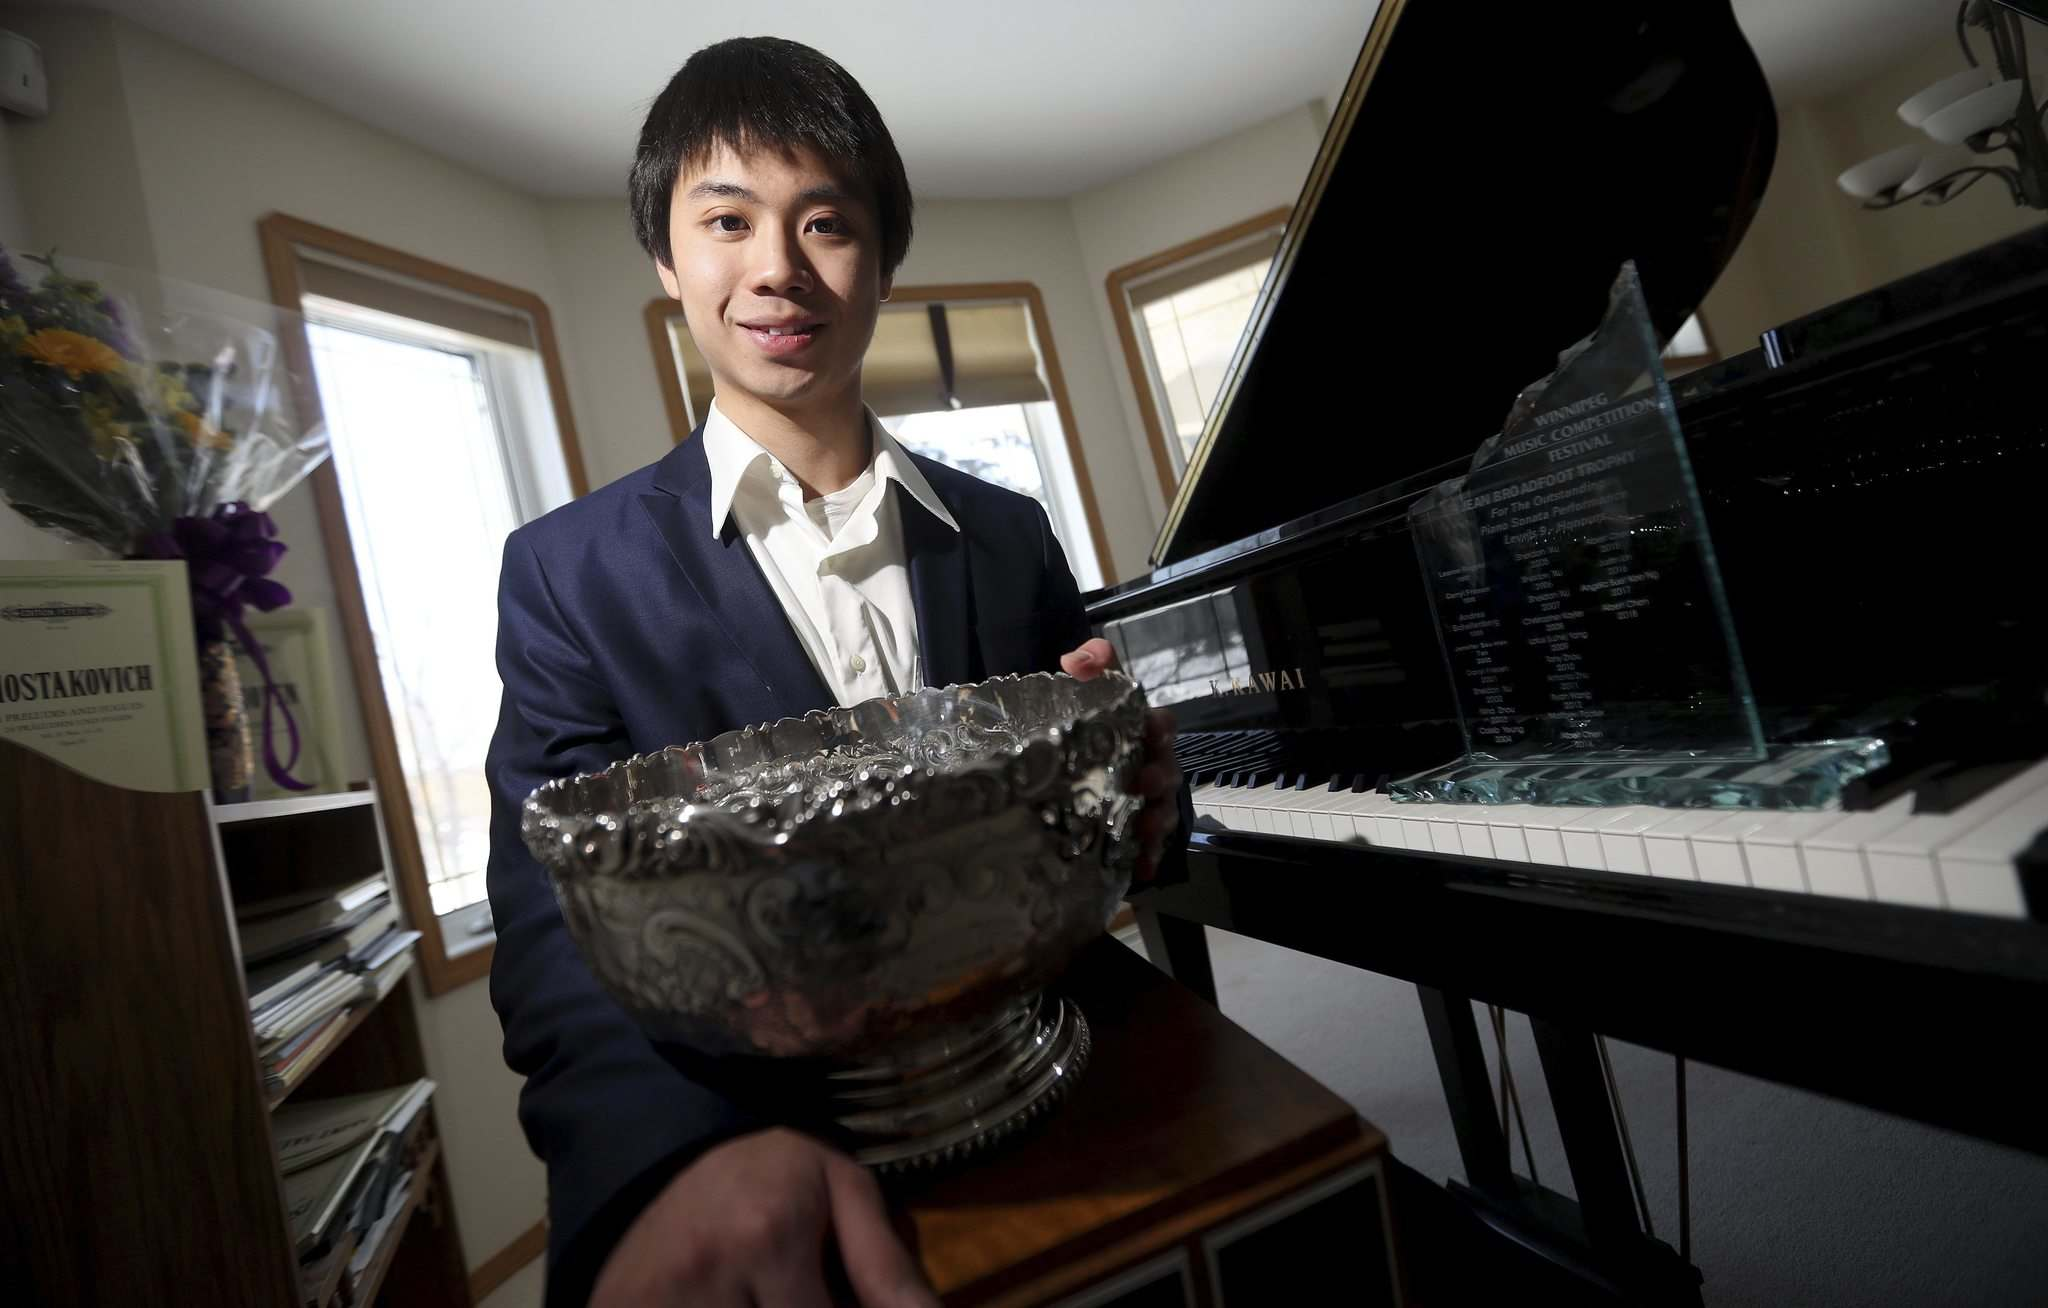 TREVOR HAGAN / WINNIPEG FREE PRESS</p><p>Albert Chen's piano performance of a work by Shostakovich on Saturday earned him the Aikins Memorial Trophy for the most outstanding instrumental performance at the Winnipeg Music Festival.</p></p>